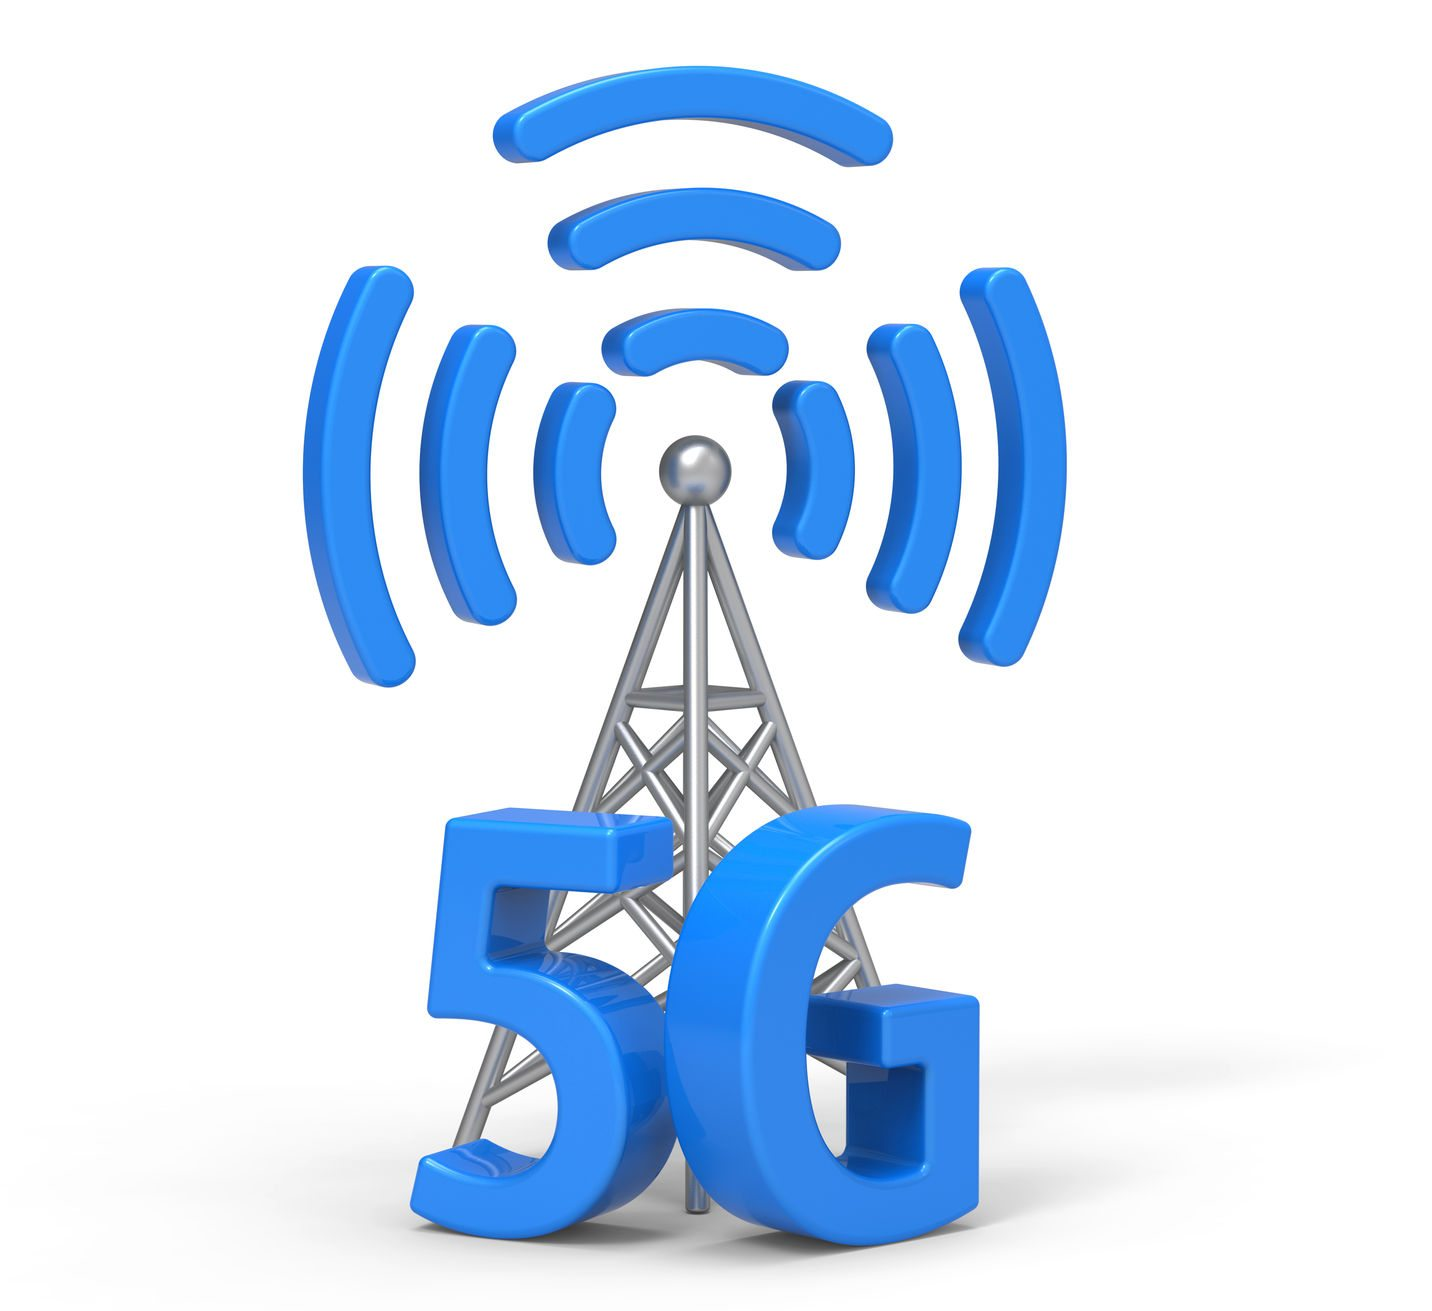 5G NR: Massive MIMO and Beamforming – What does it mean